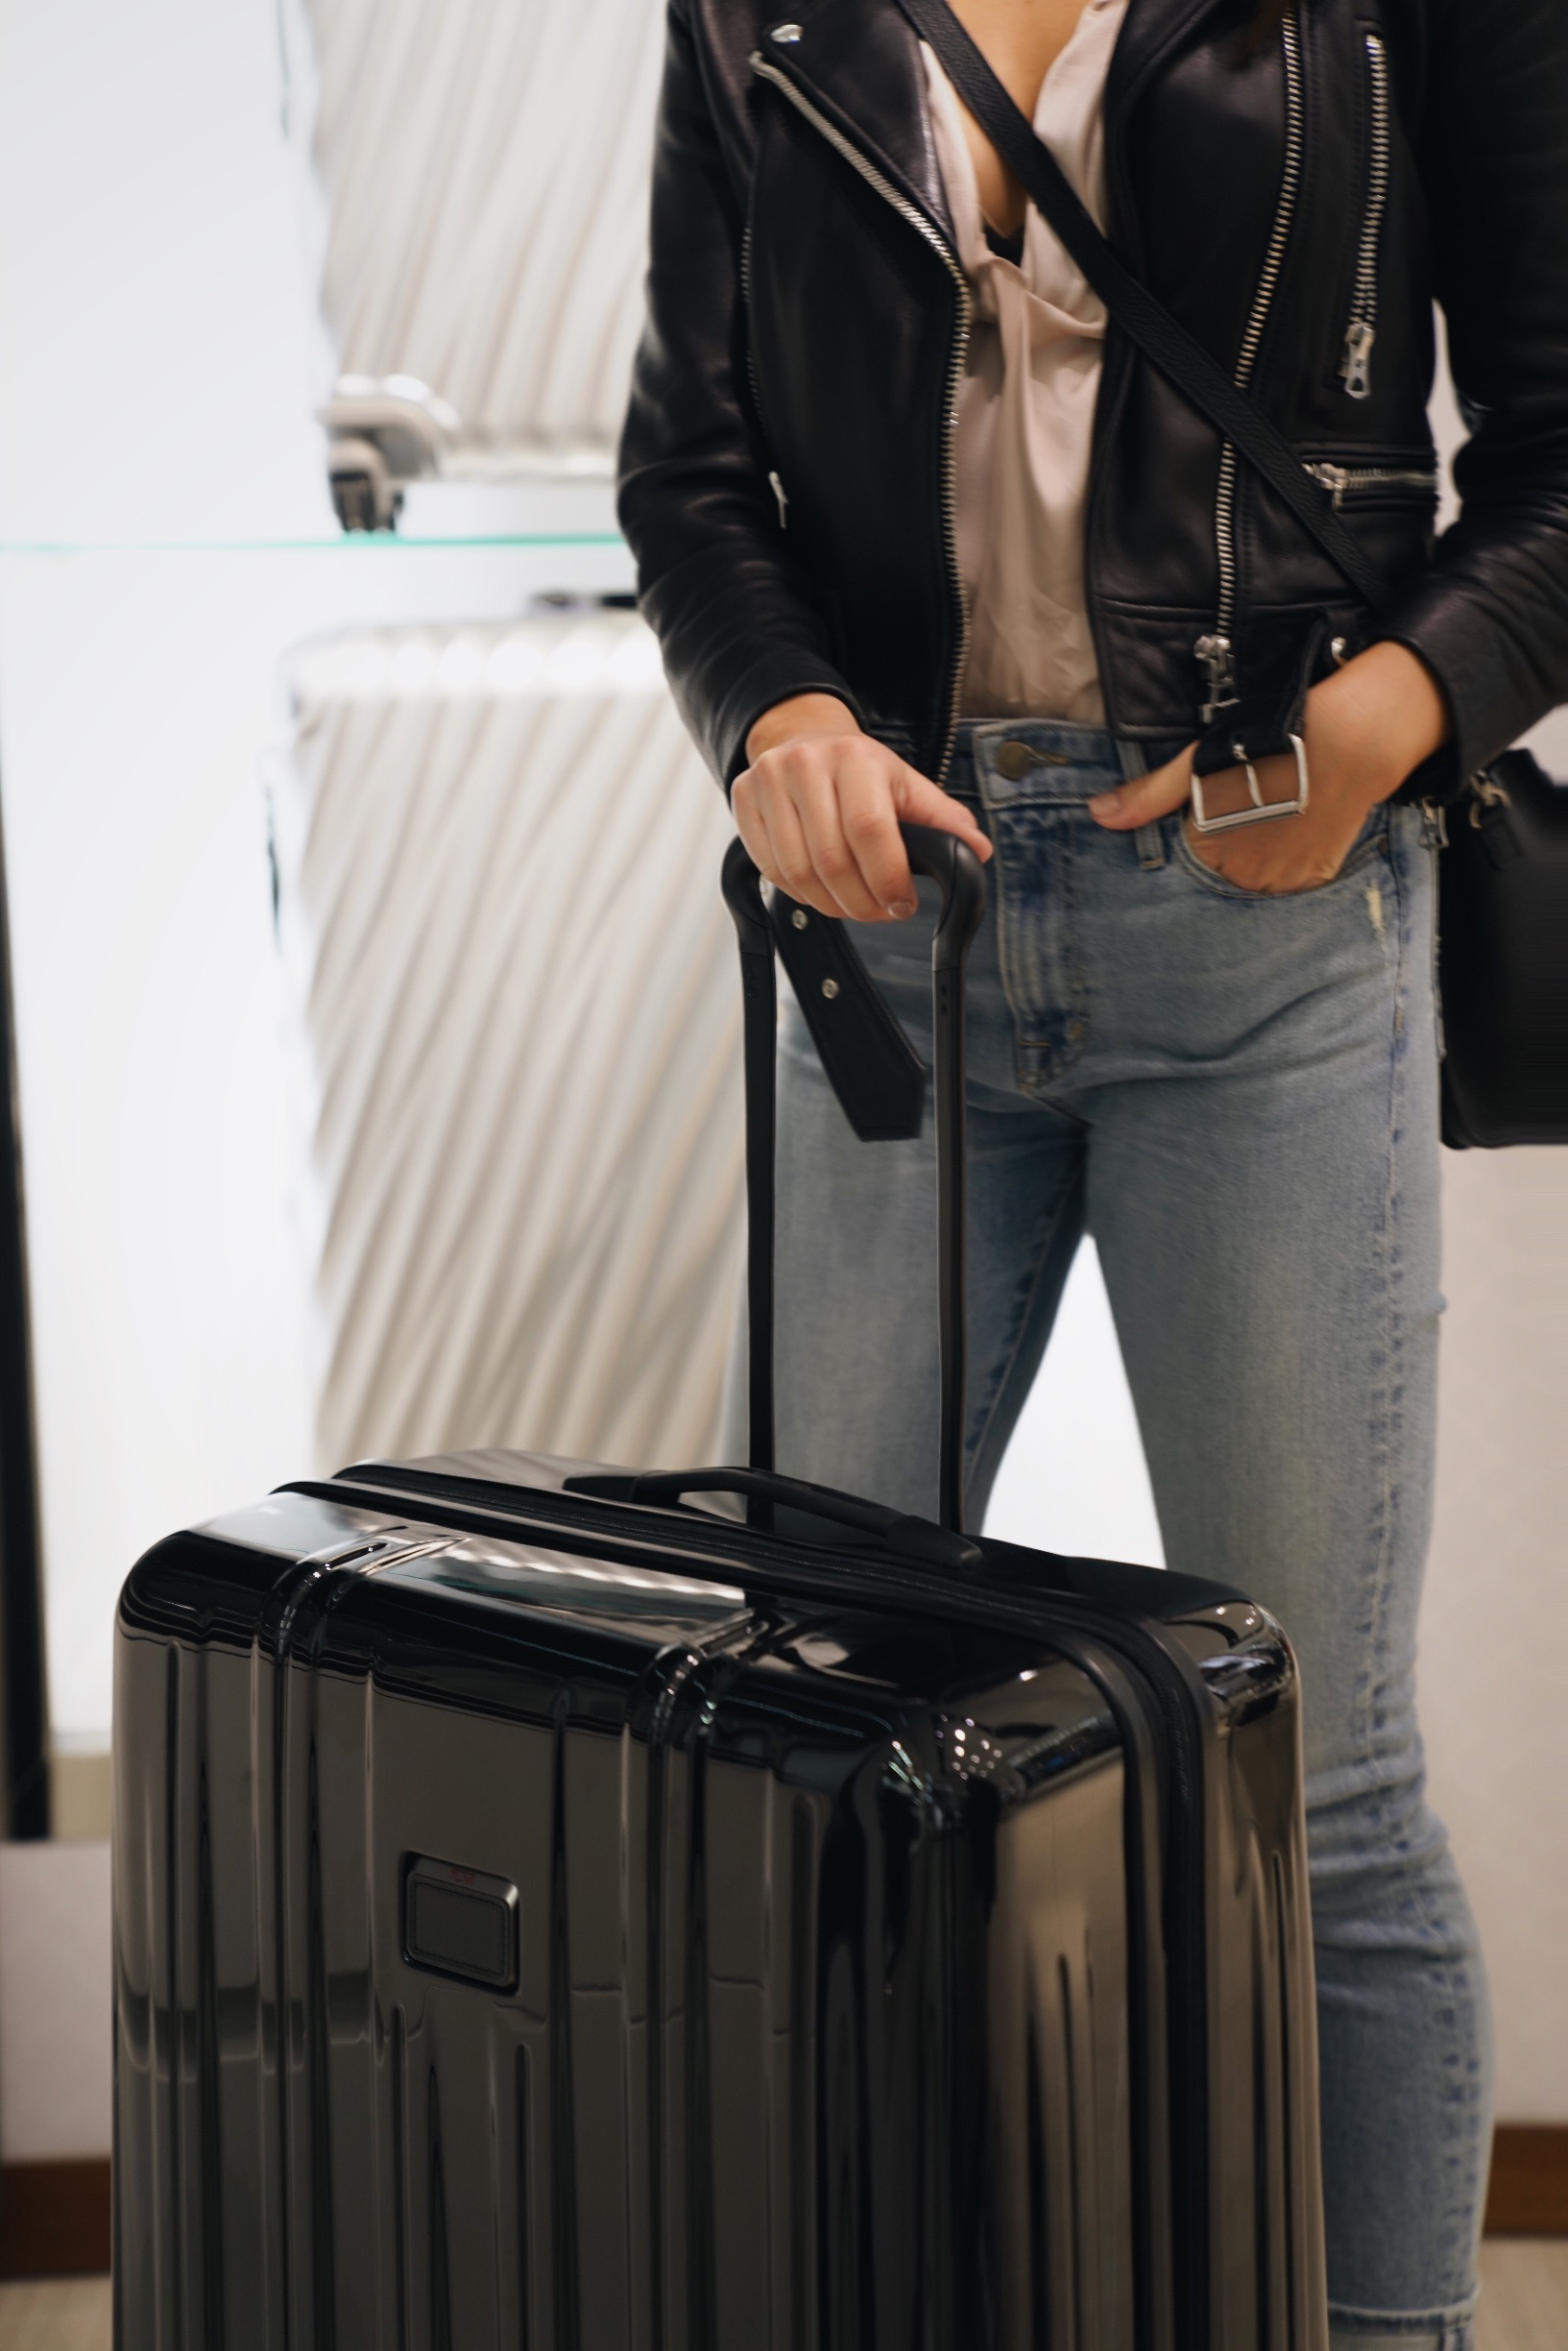 At Tumi, Kira found lightweight luggage, toiletry bags, and a leather phone case, all of which are sure to stand up to her rigorous travel schedule.